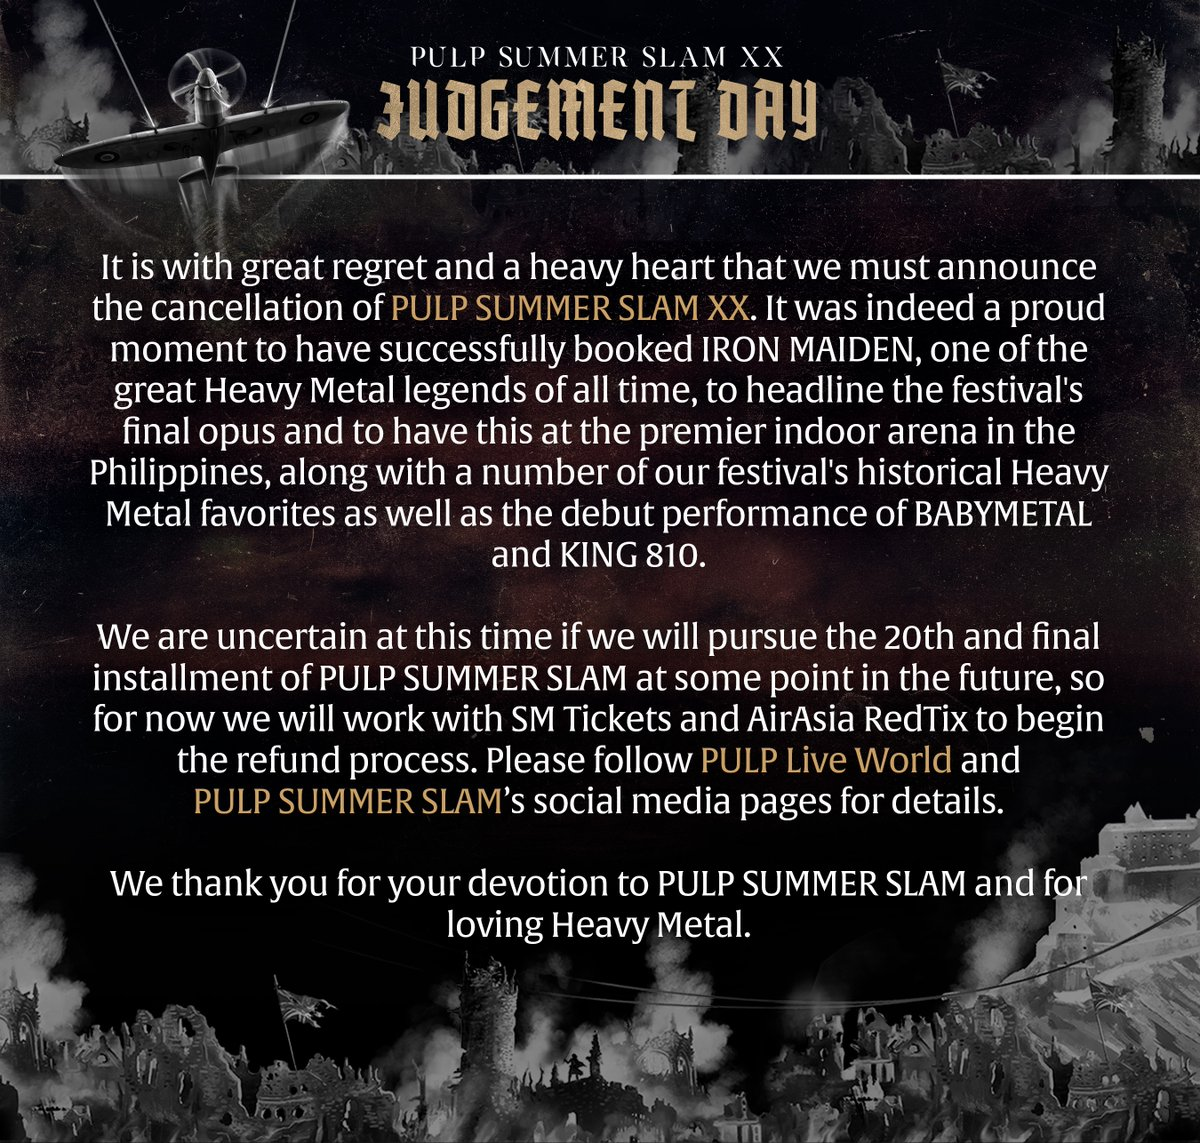 Manila Pulp Summer Slam Festival which Iron Maiden were due to headline on May 16th has been cancelled due to Coronavirus. We are sorry that we won't get to see our fans in the Philippines on what would have been our first-ever visit there. We do hope to get there one day.